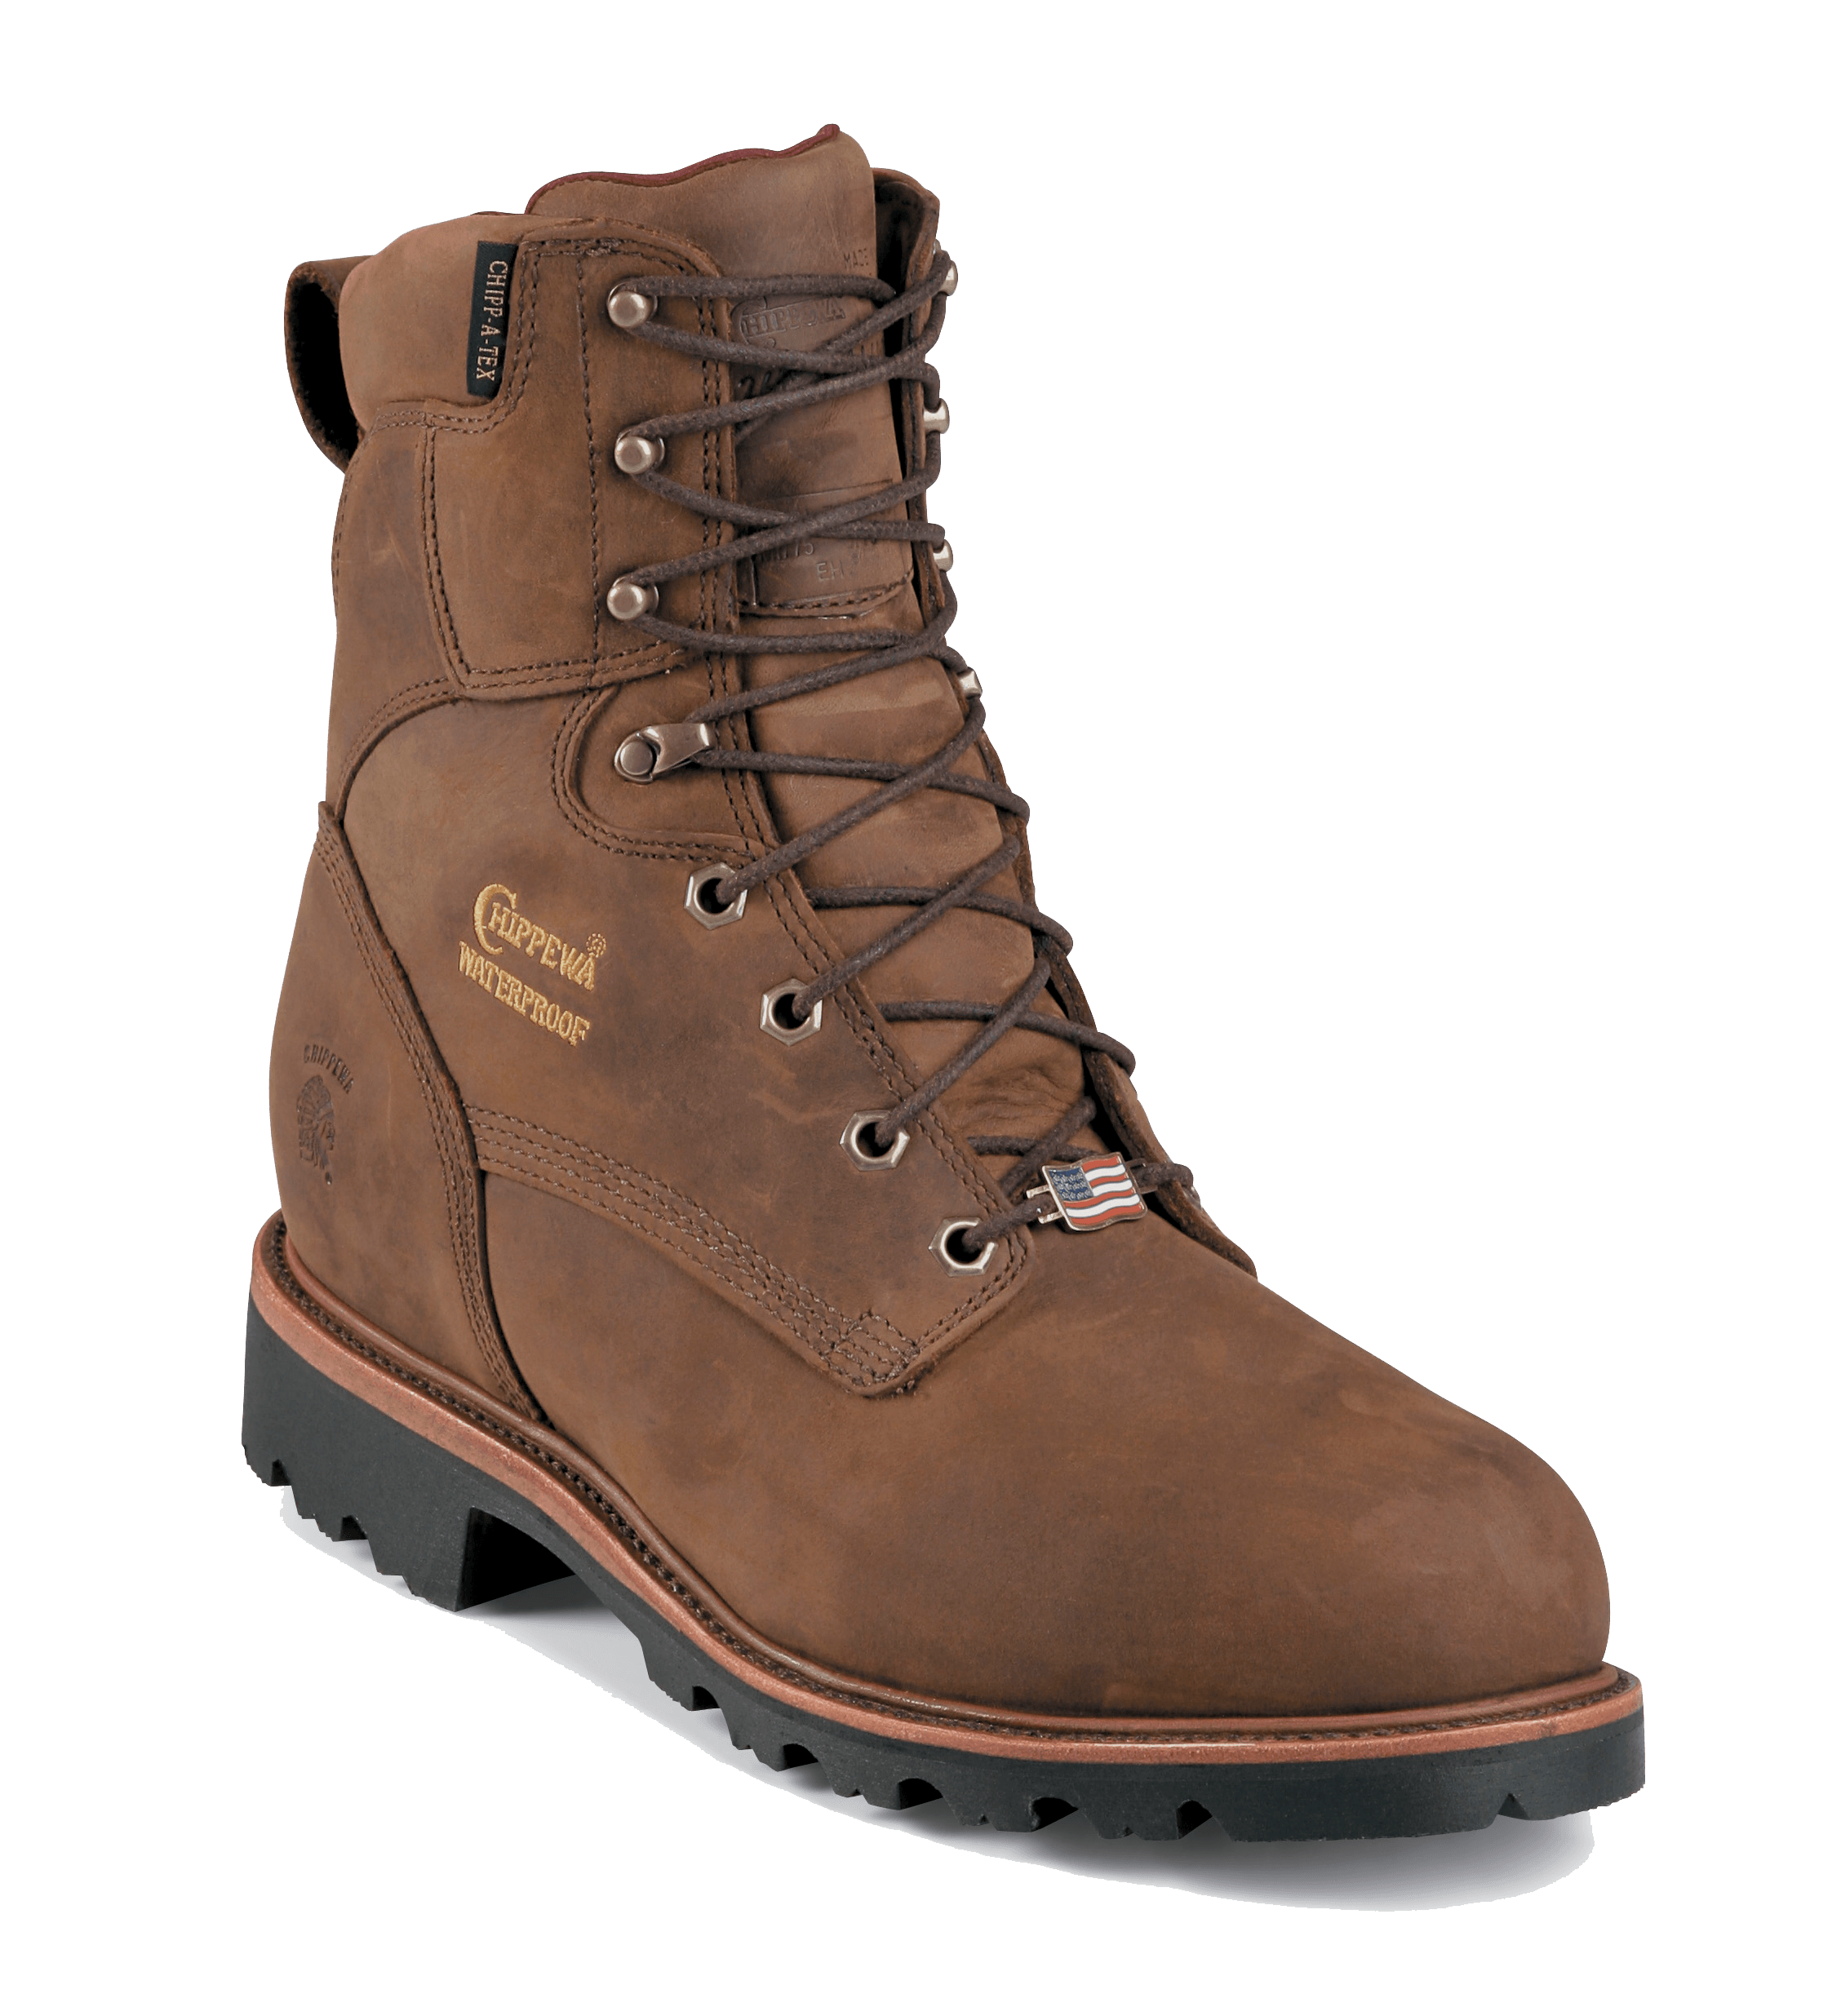 Chippewa USA Waterproof Insulated Boot